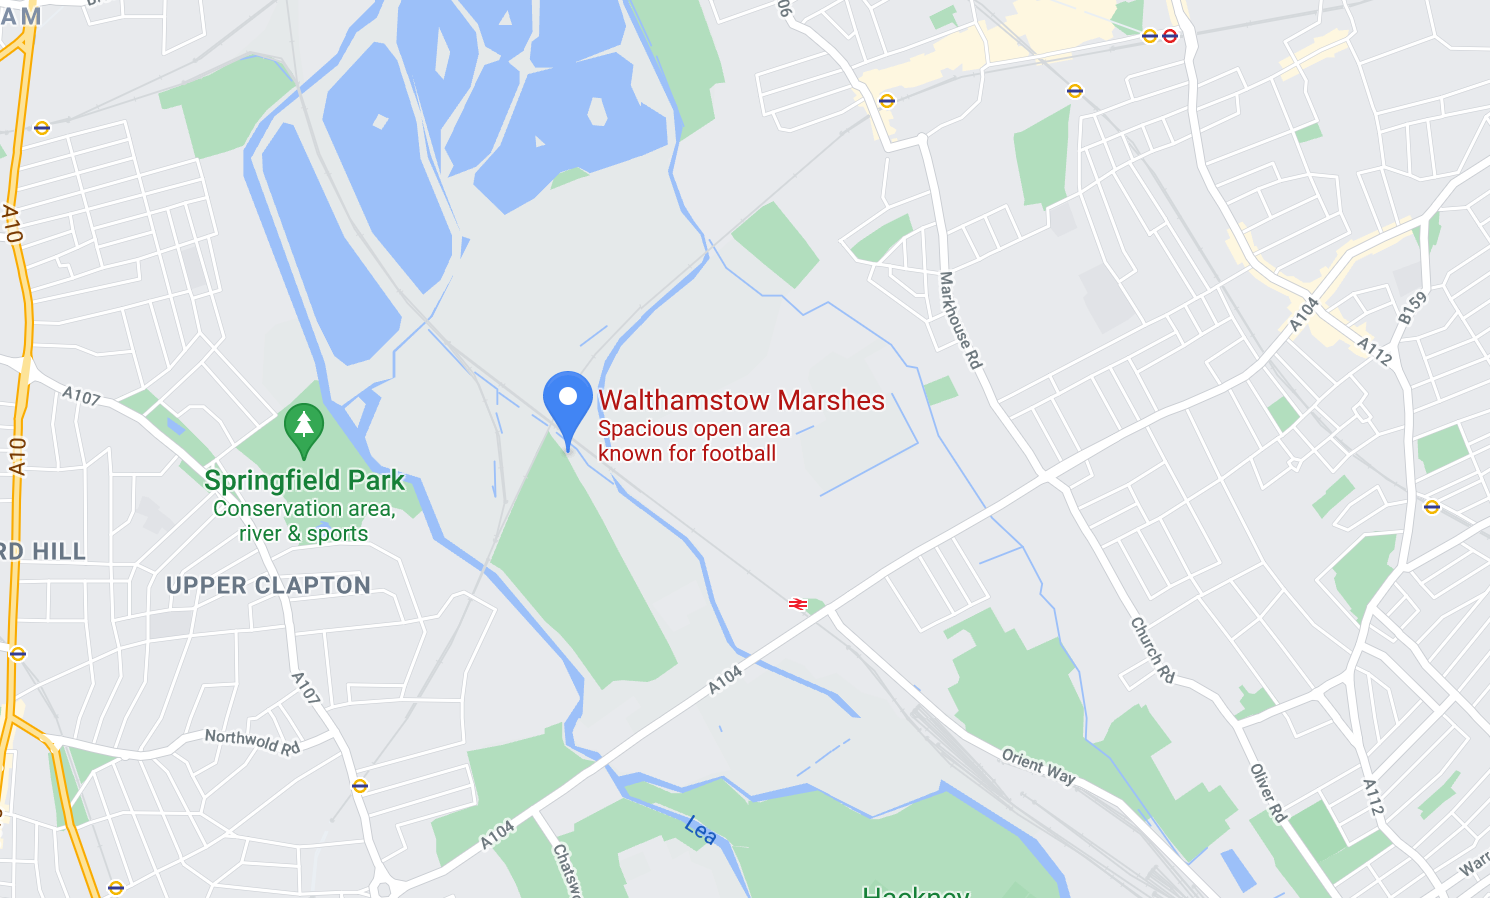 Find the best photo location in London at Walthamstow Marshes